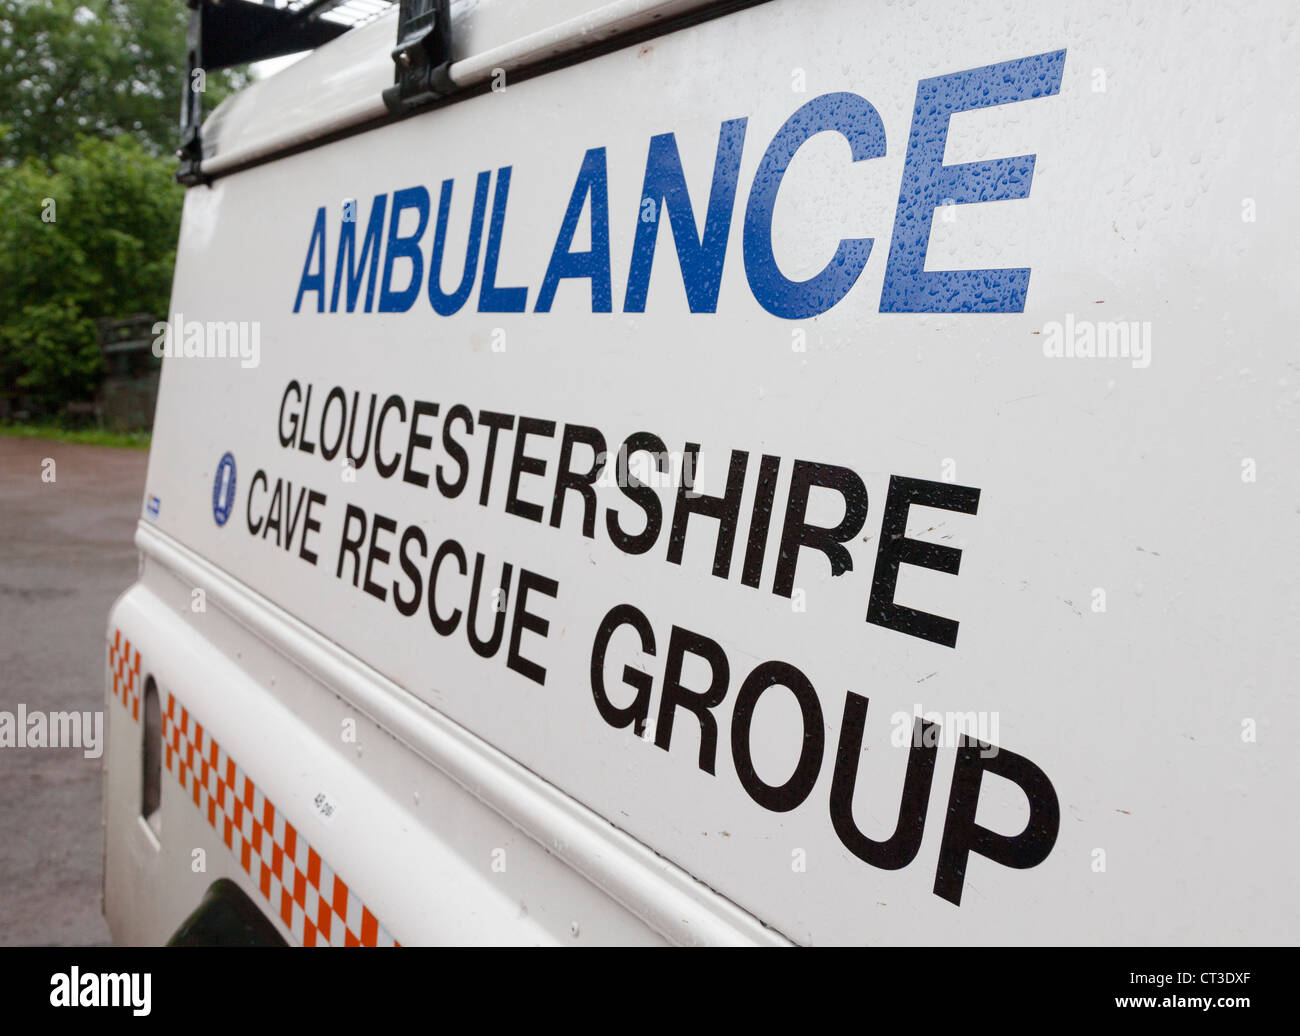 Gloucestershire Cave Rescue Group ambulance, Forest of Dean, UK - Stock Image